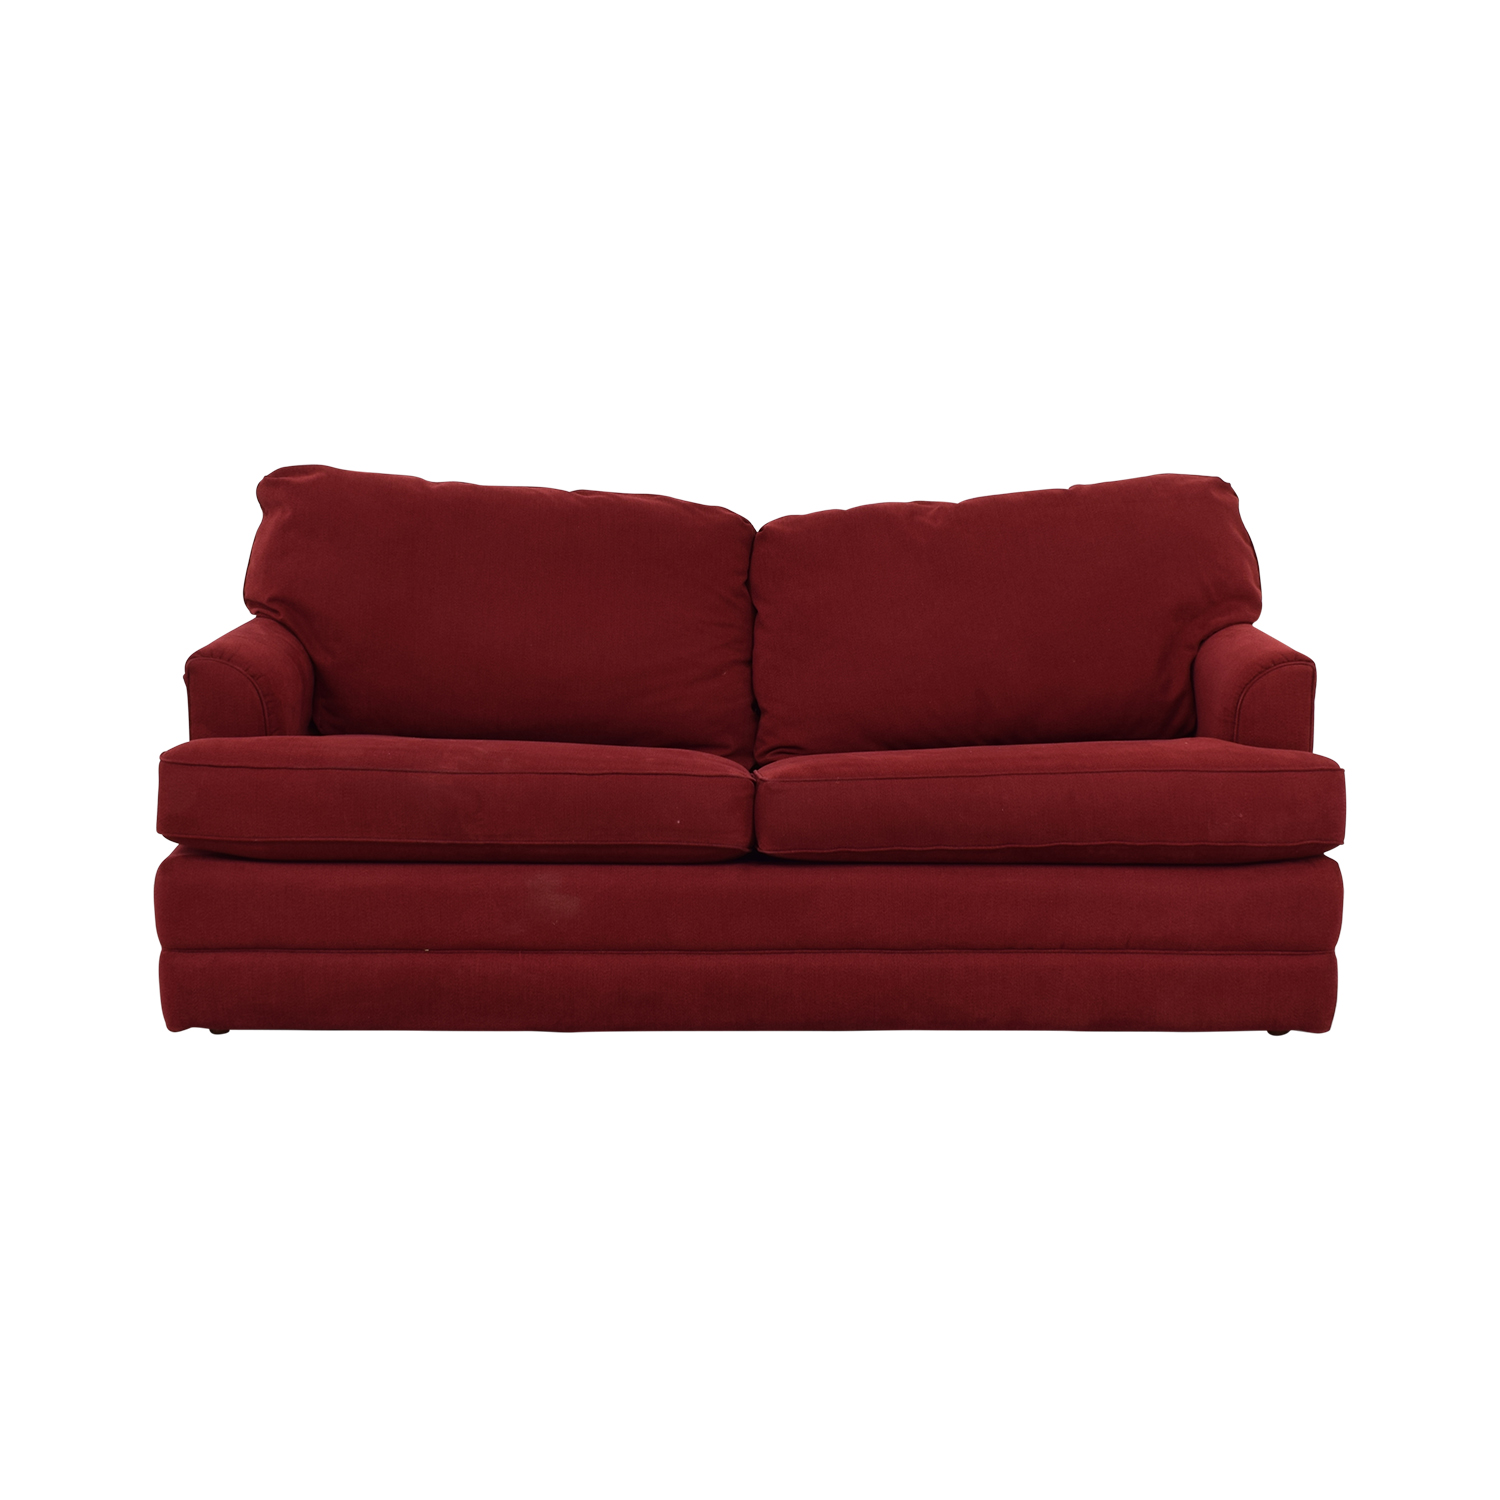 La Z Boy Sofa La-Z-Boy La-Z-Boy Red Convertible Queen Sleeper Sofa price